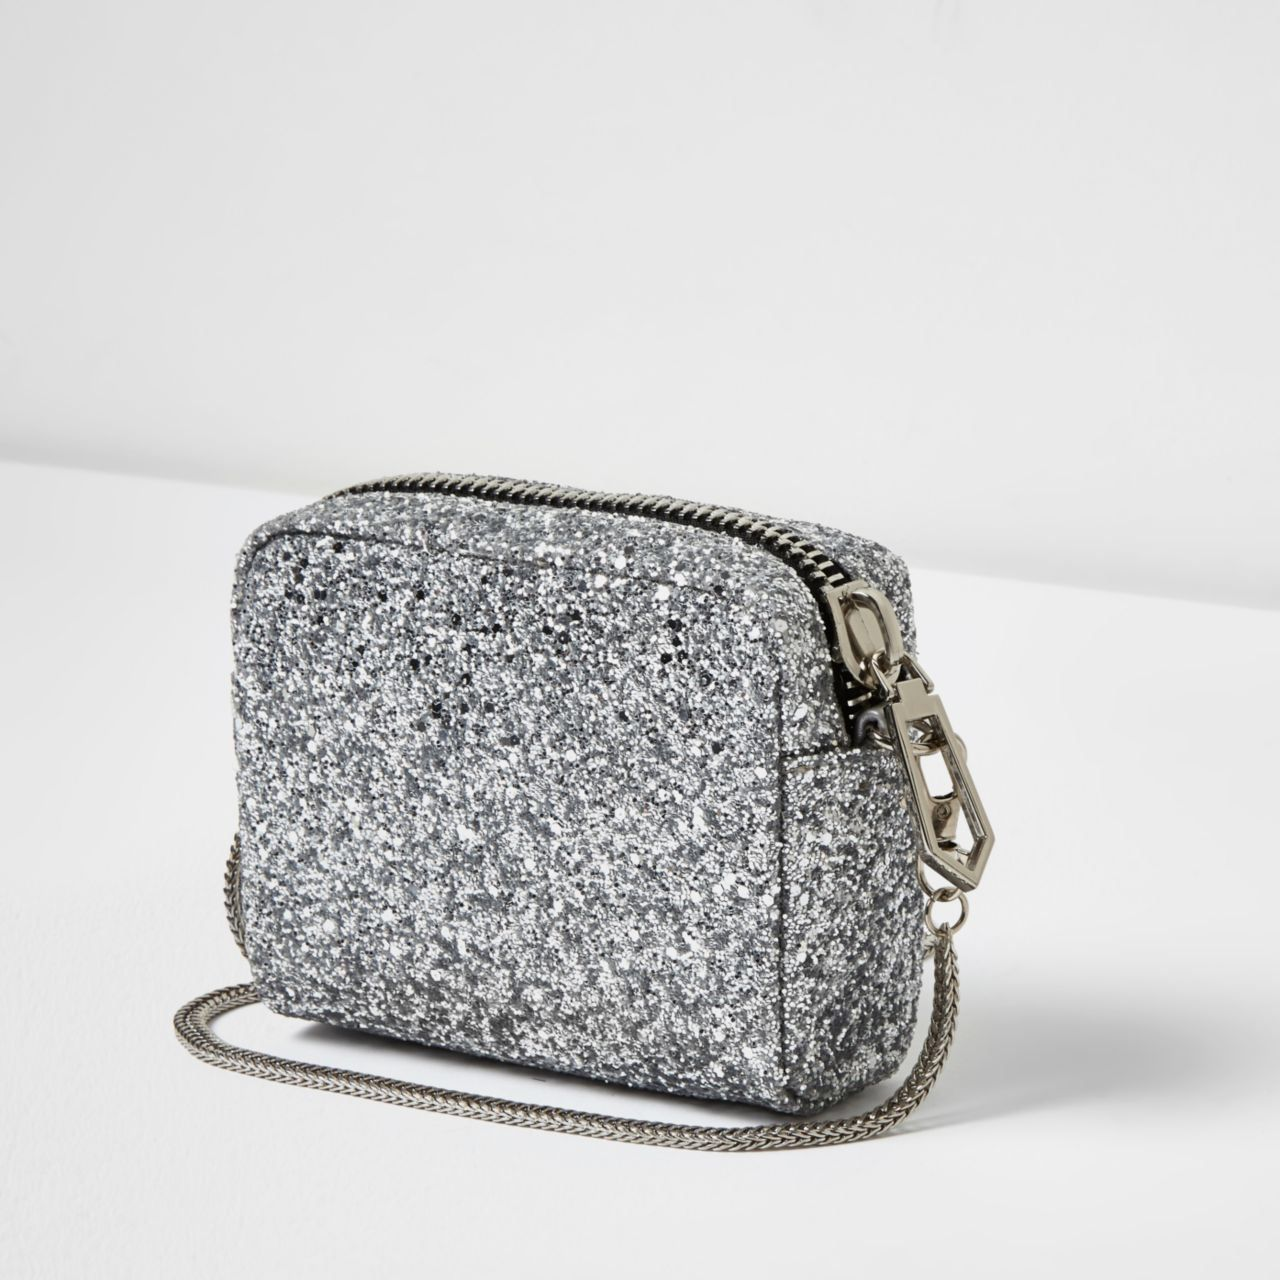 Checkout this Silver glitter mini crossbody bag from River Island